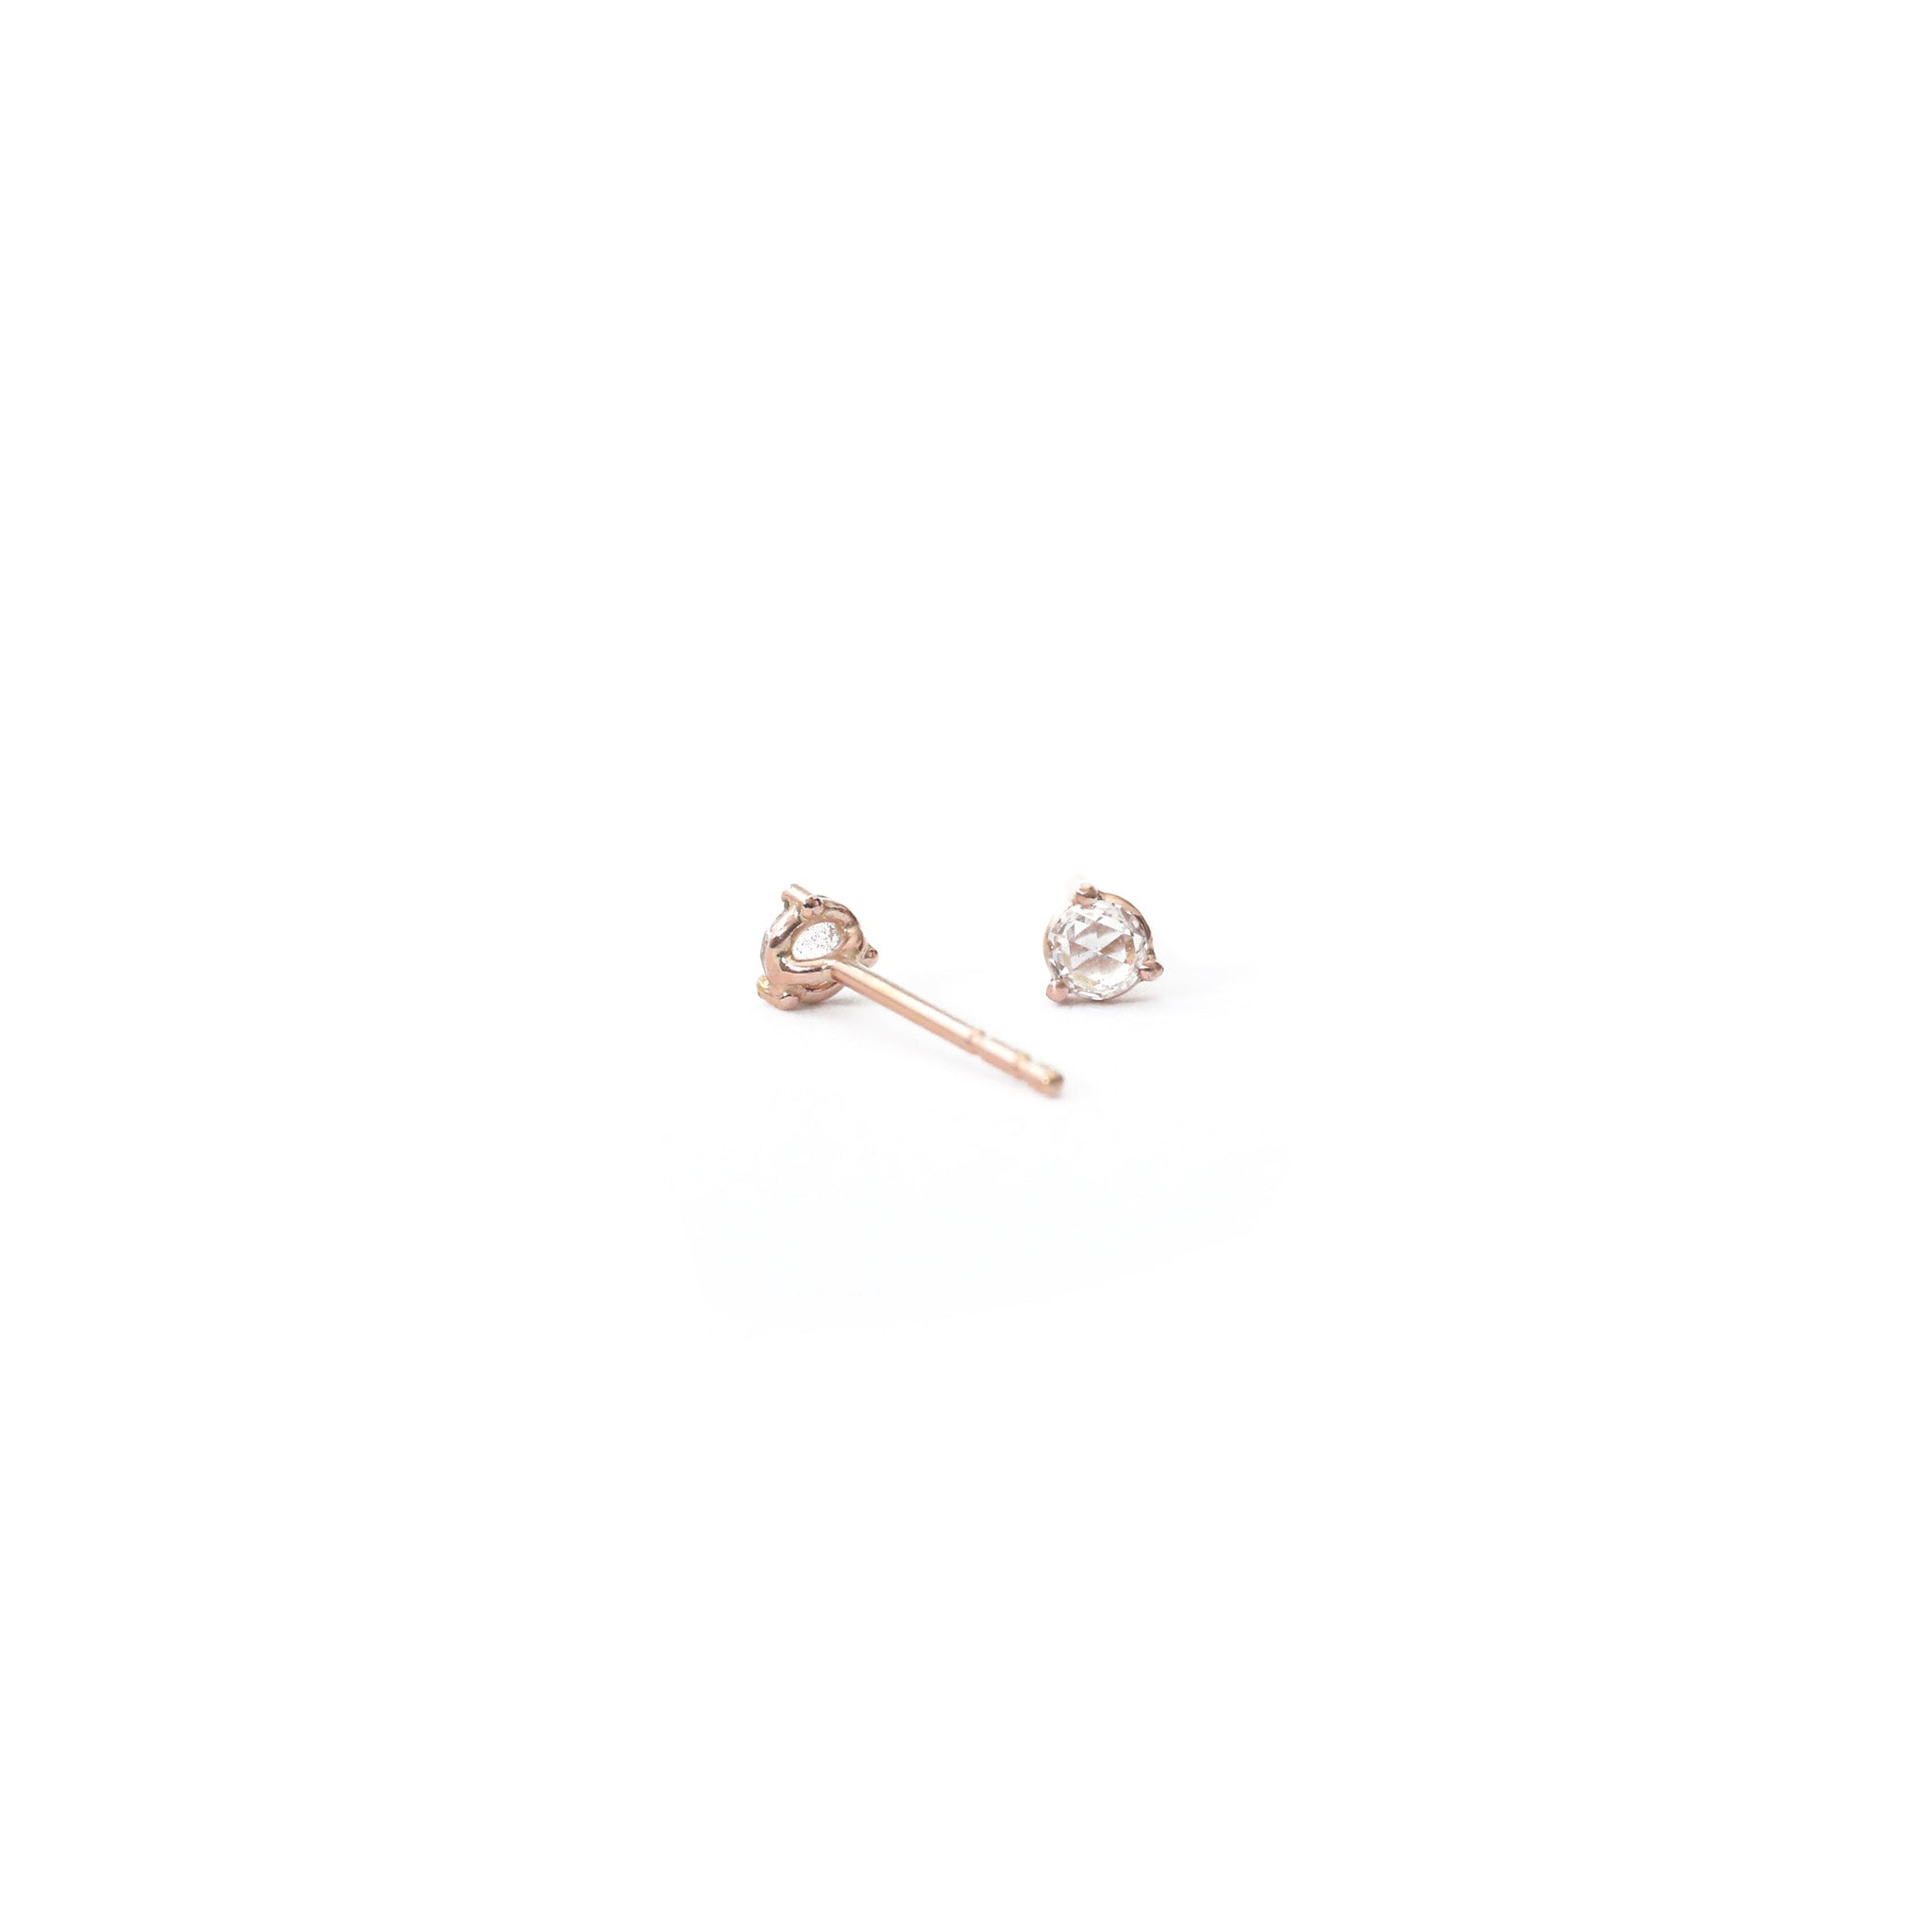 Antique Rose Cut Diamond Earrings